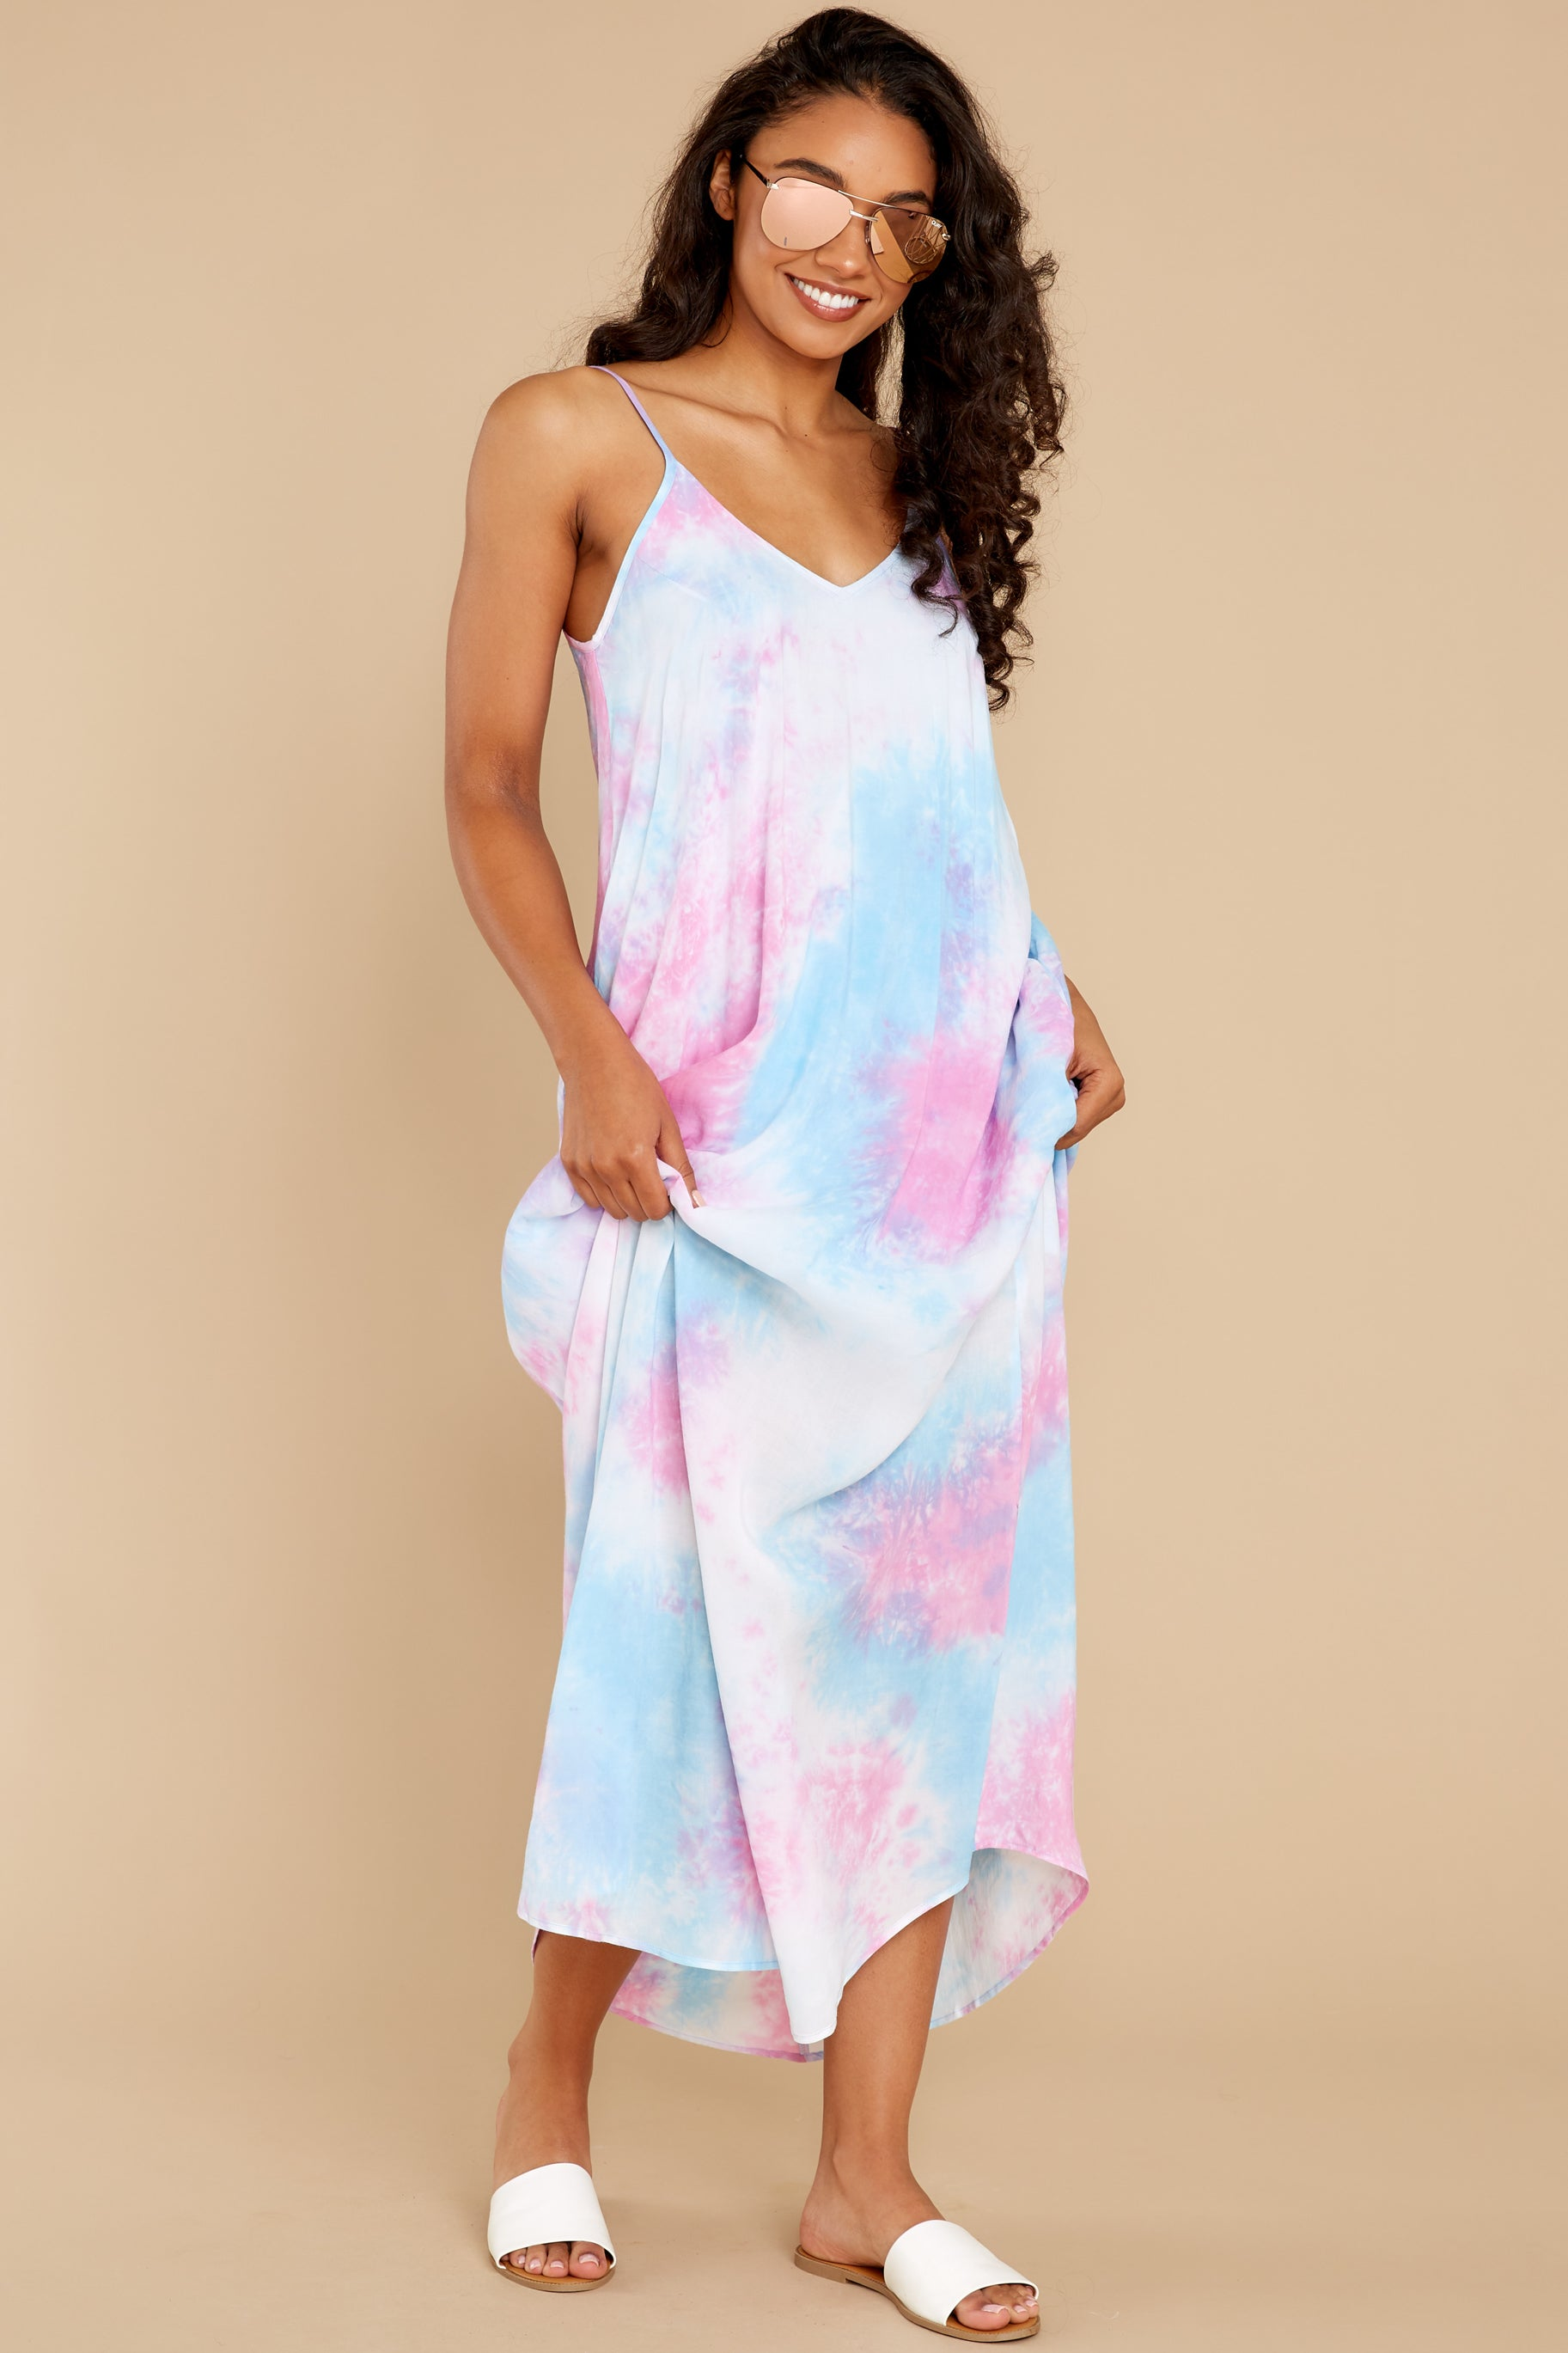 5 Part Of Your Charm Pink Multi Tie Dye Maxi Dress at reddress.com